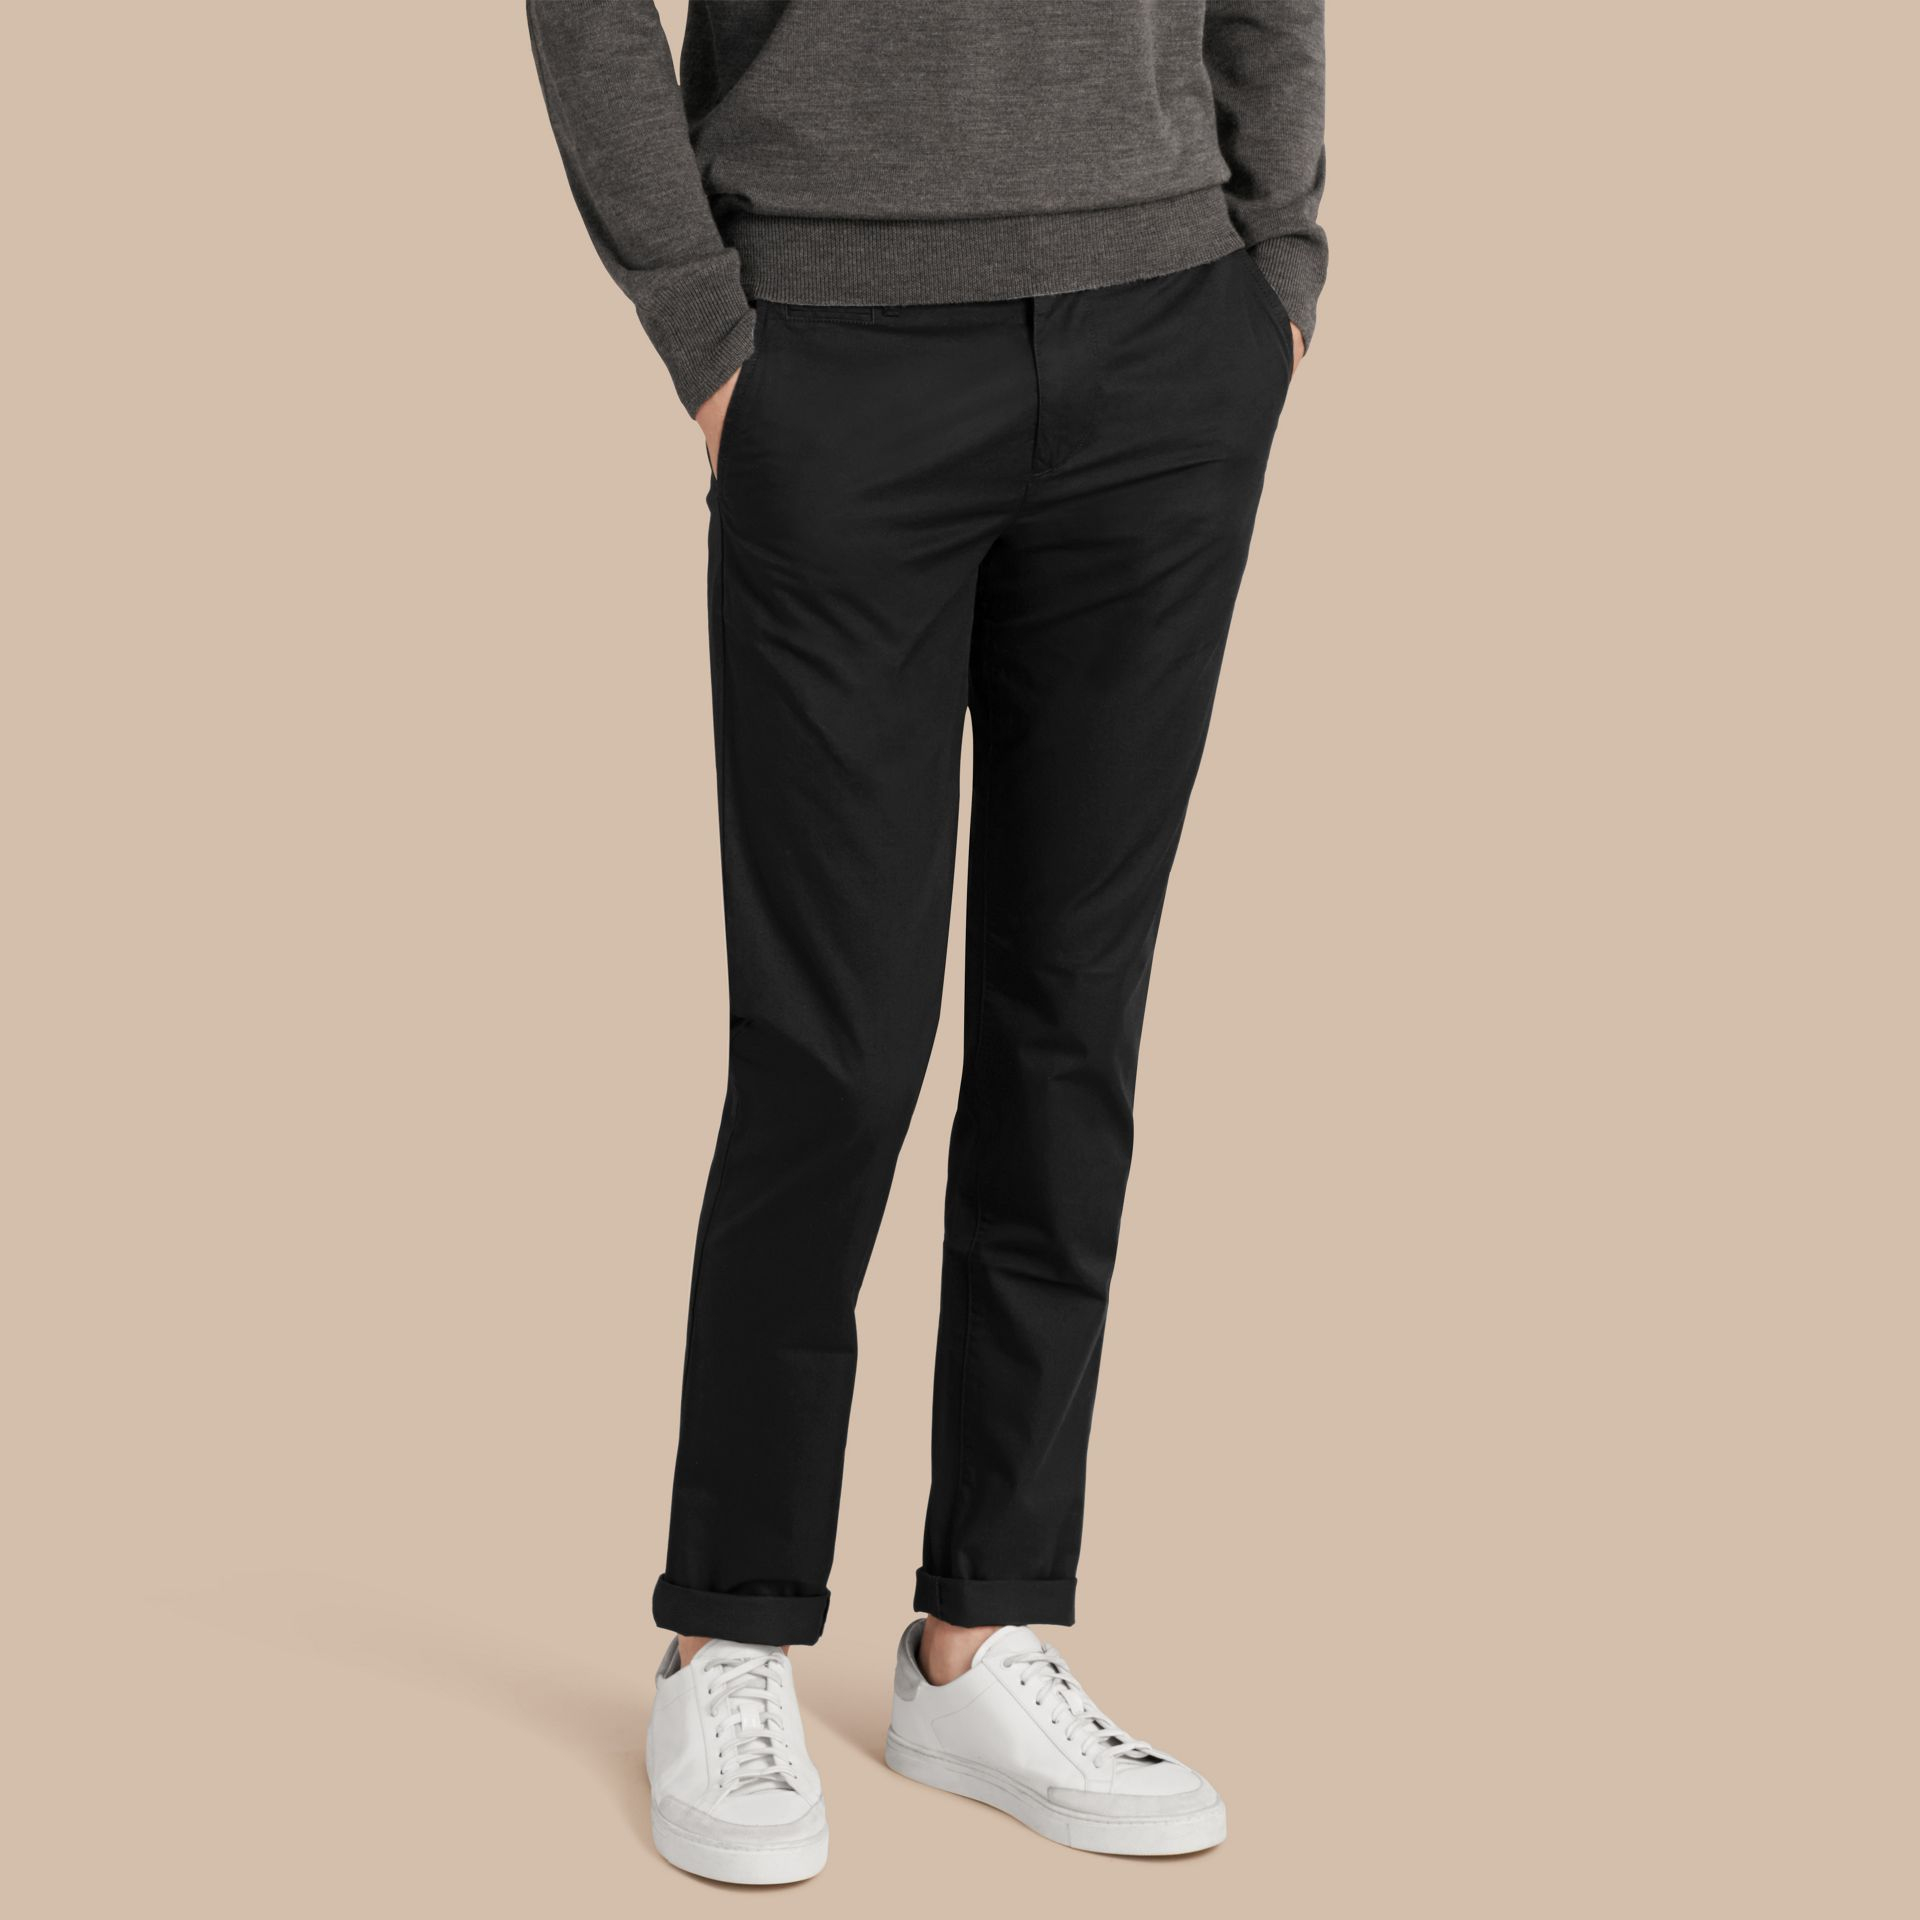 Black Slim Fit Cotton Chinos Black - gallery image 1